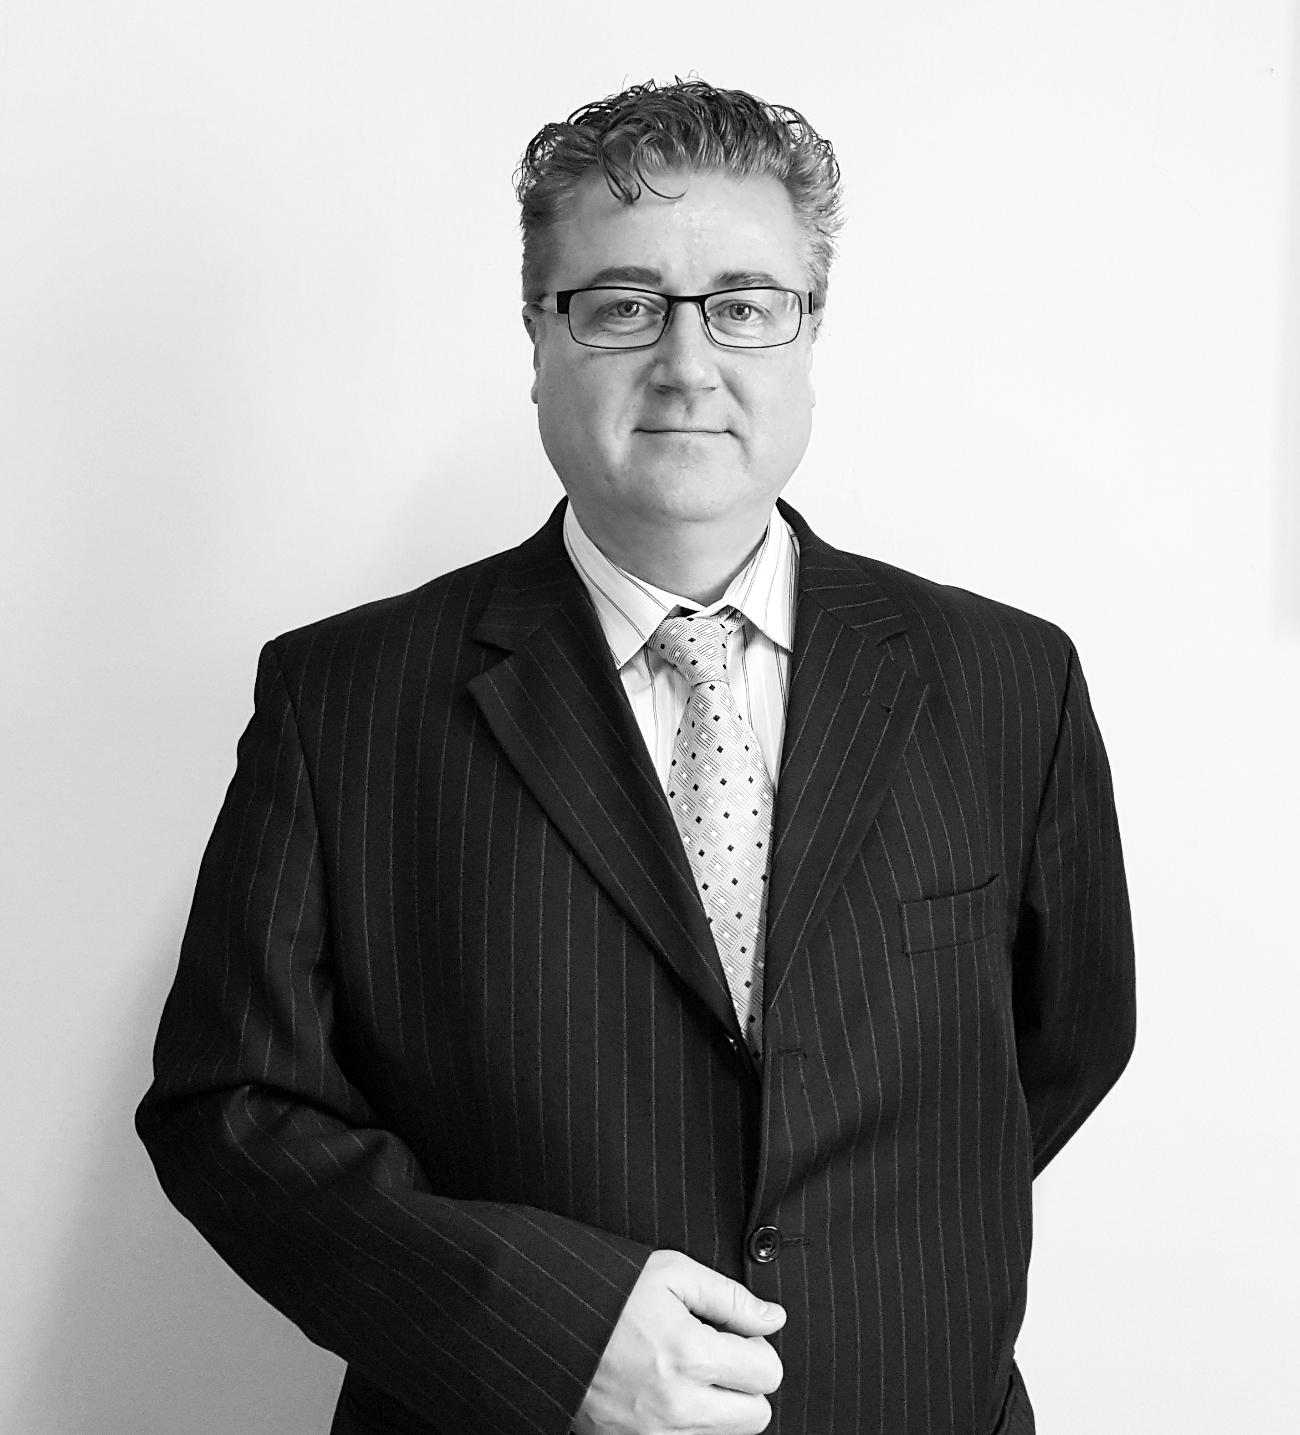 Zoltan Szemes, Owner & MD, Capital Real Estate